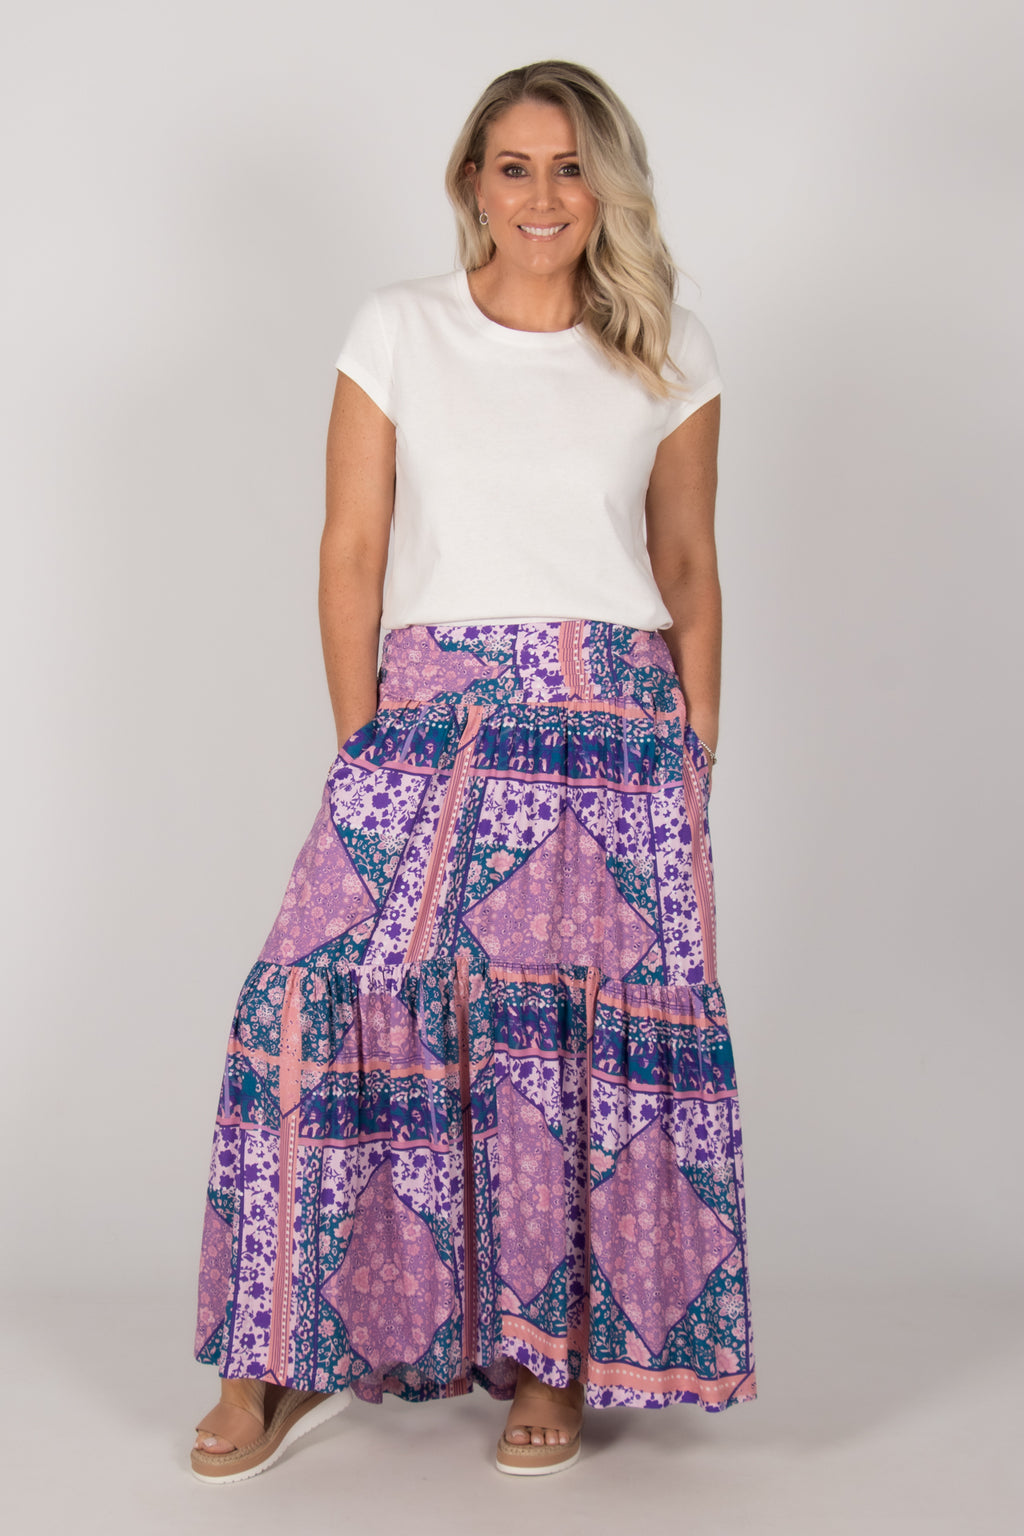 Euroa Skirt in Shades of Lavender